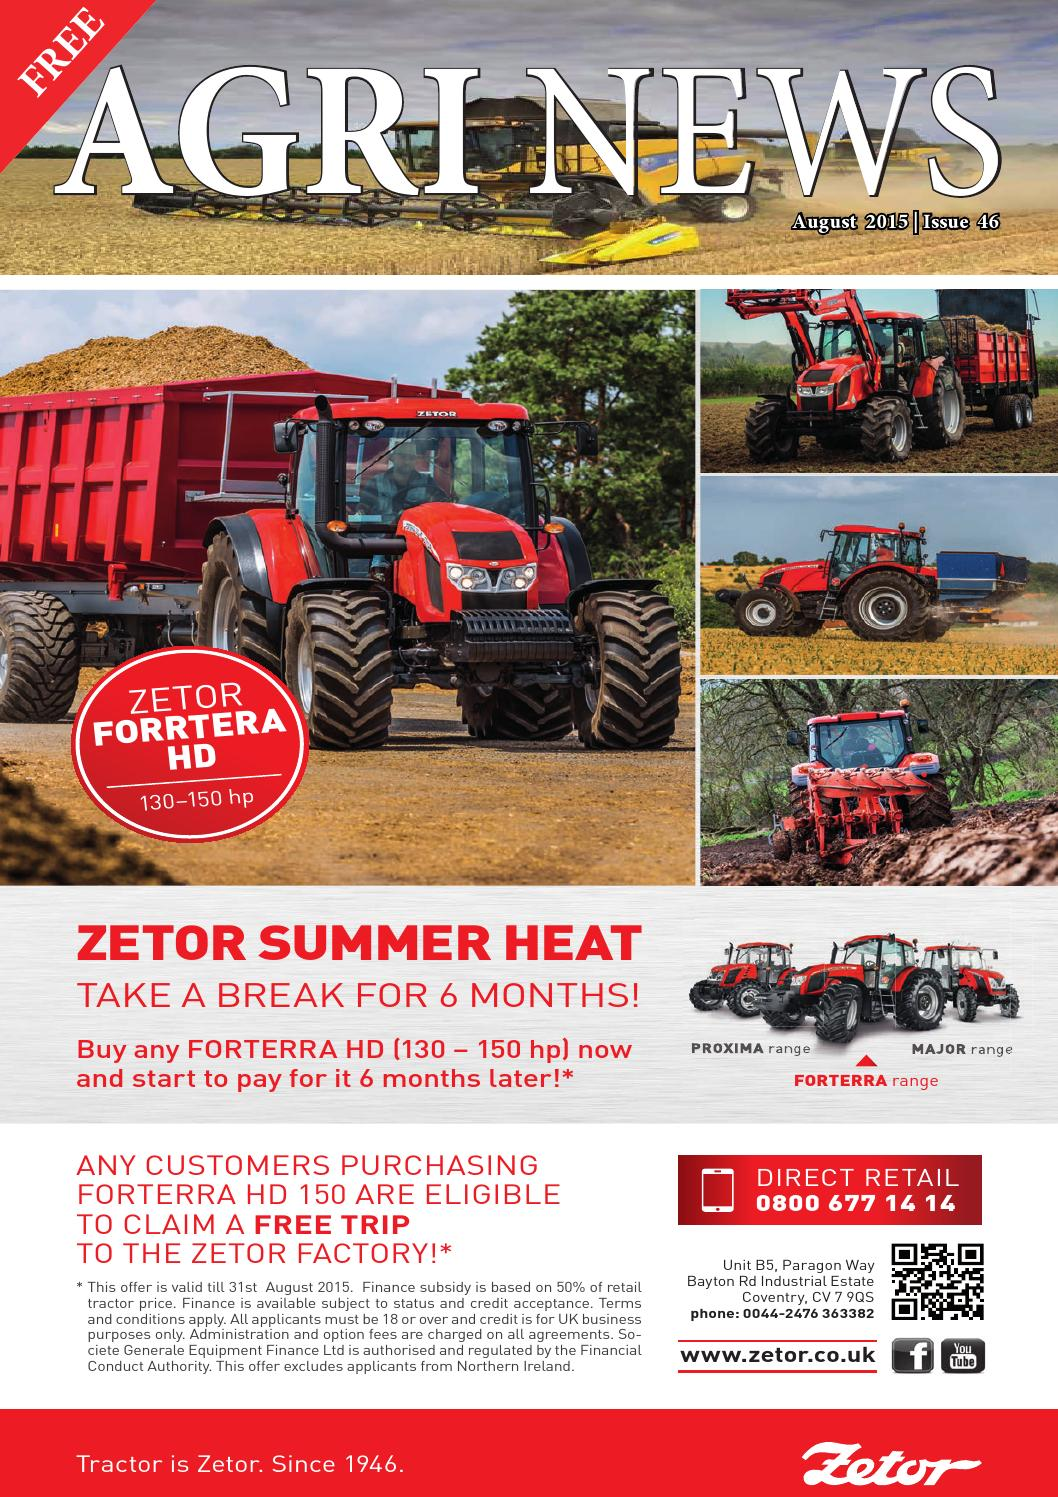 Agri News August 2015 by Victoria Smith - issuu